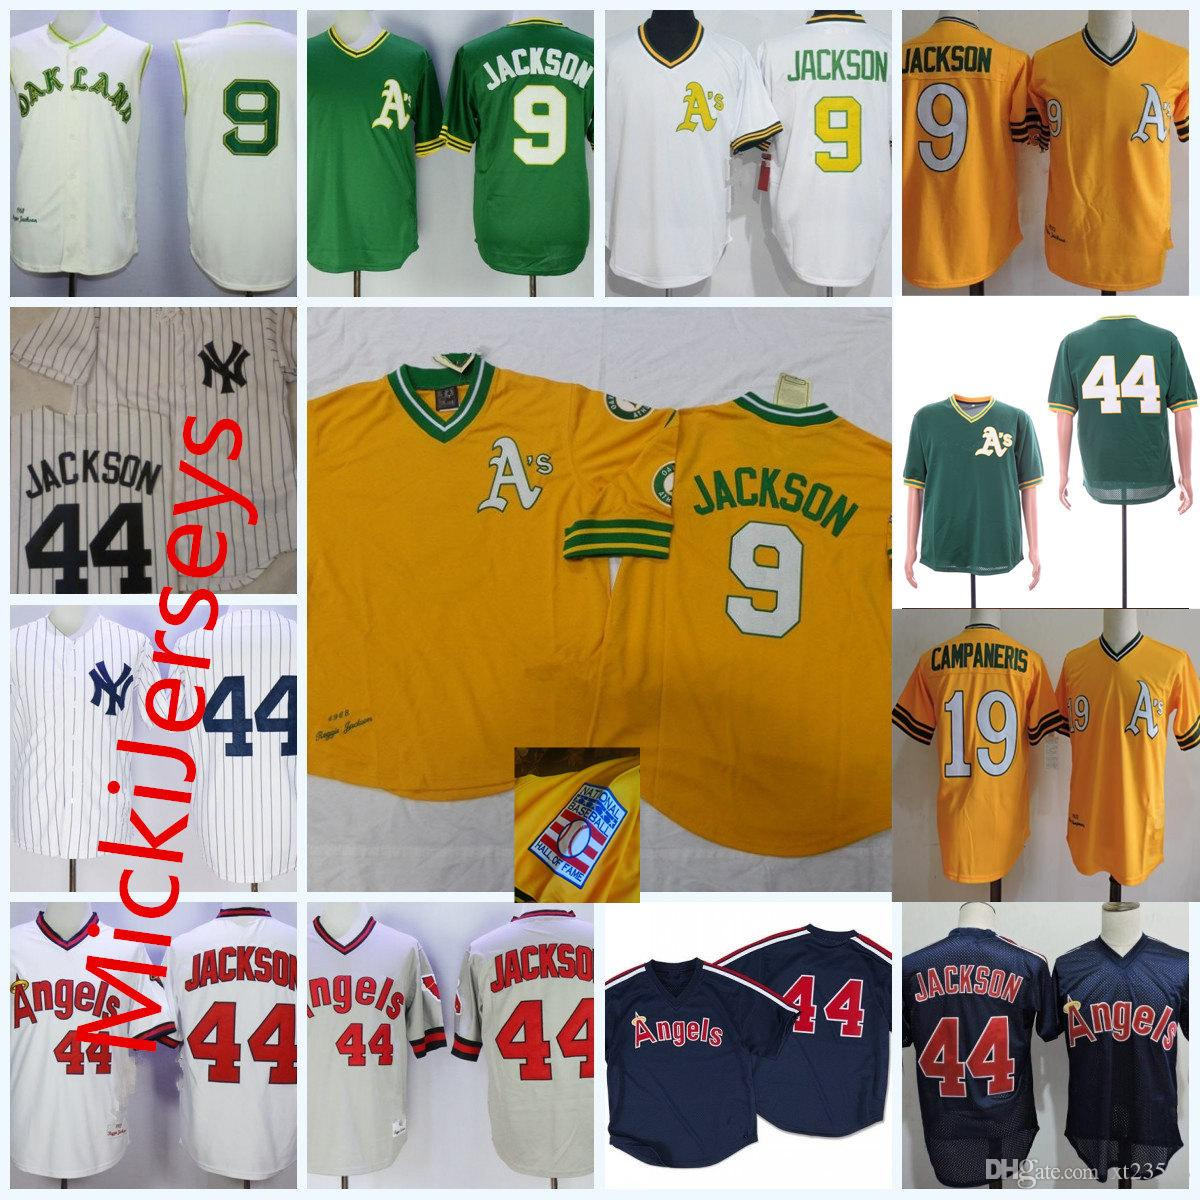 0579c3578 Cheap Mens AS1968 #9 Reggie Jackson #19 Bert Campaneris Jersey Stiched  Orange White Navy #44 Reggie Jackson California Jersey S-3XL